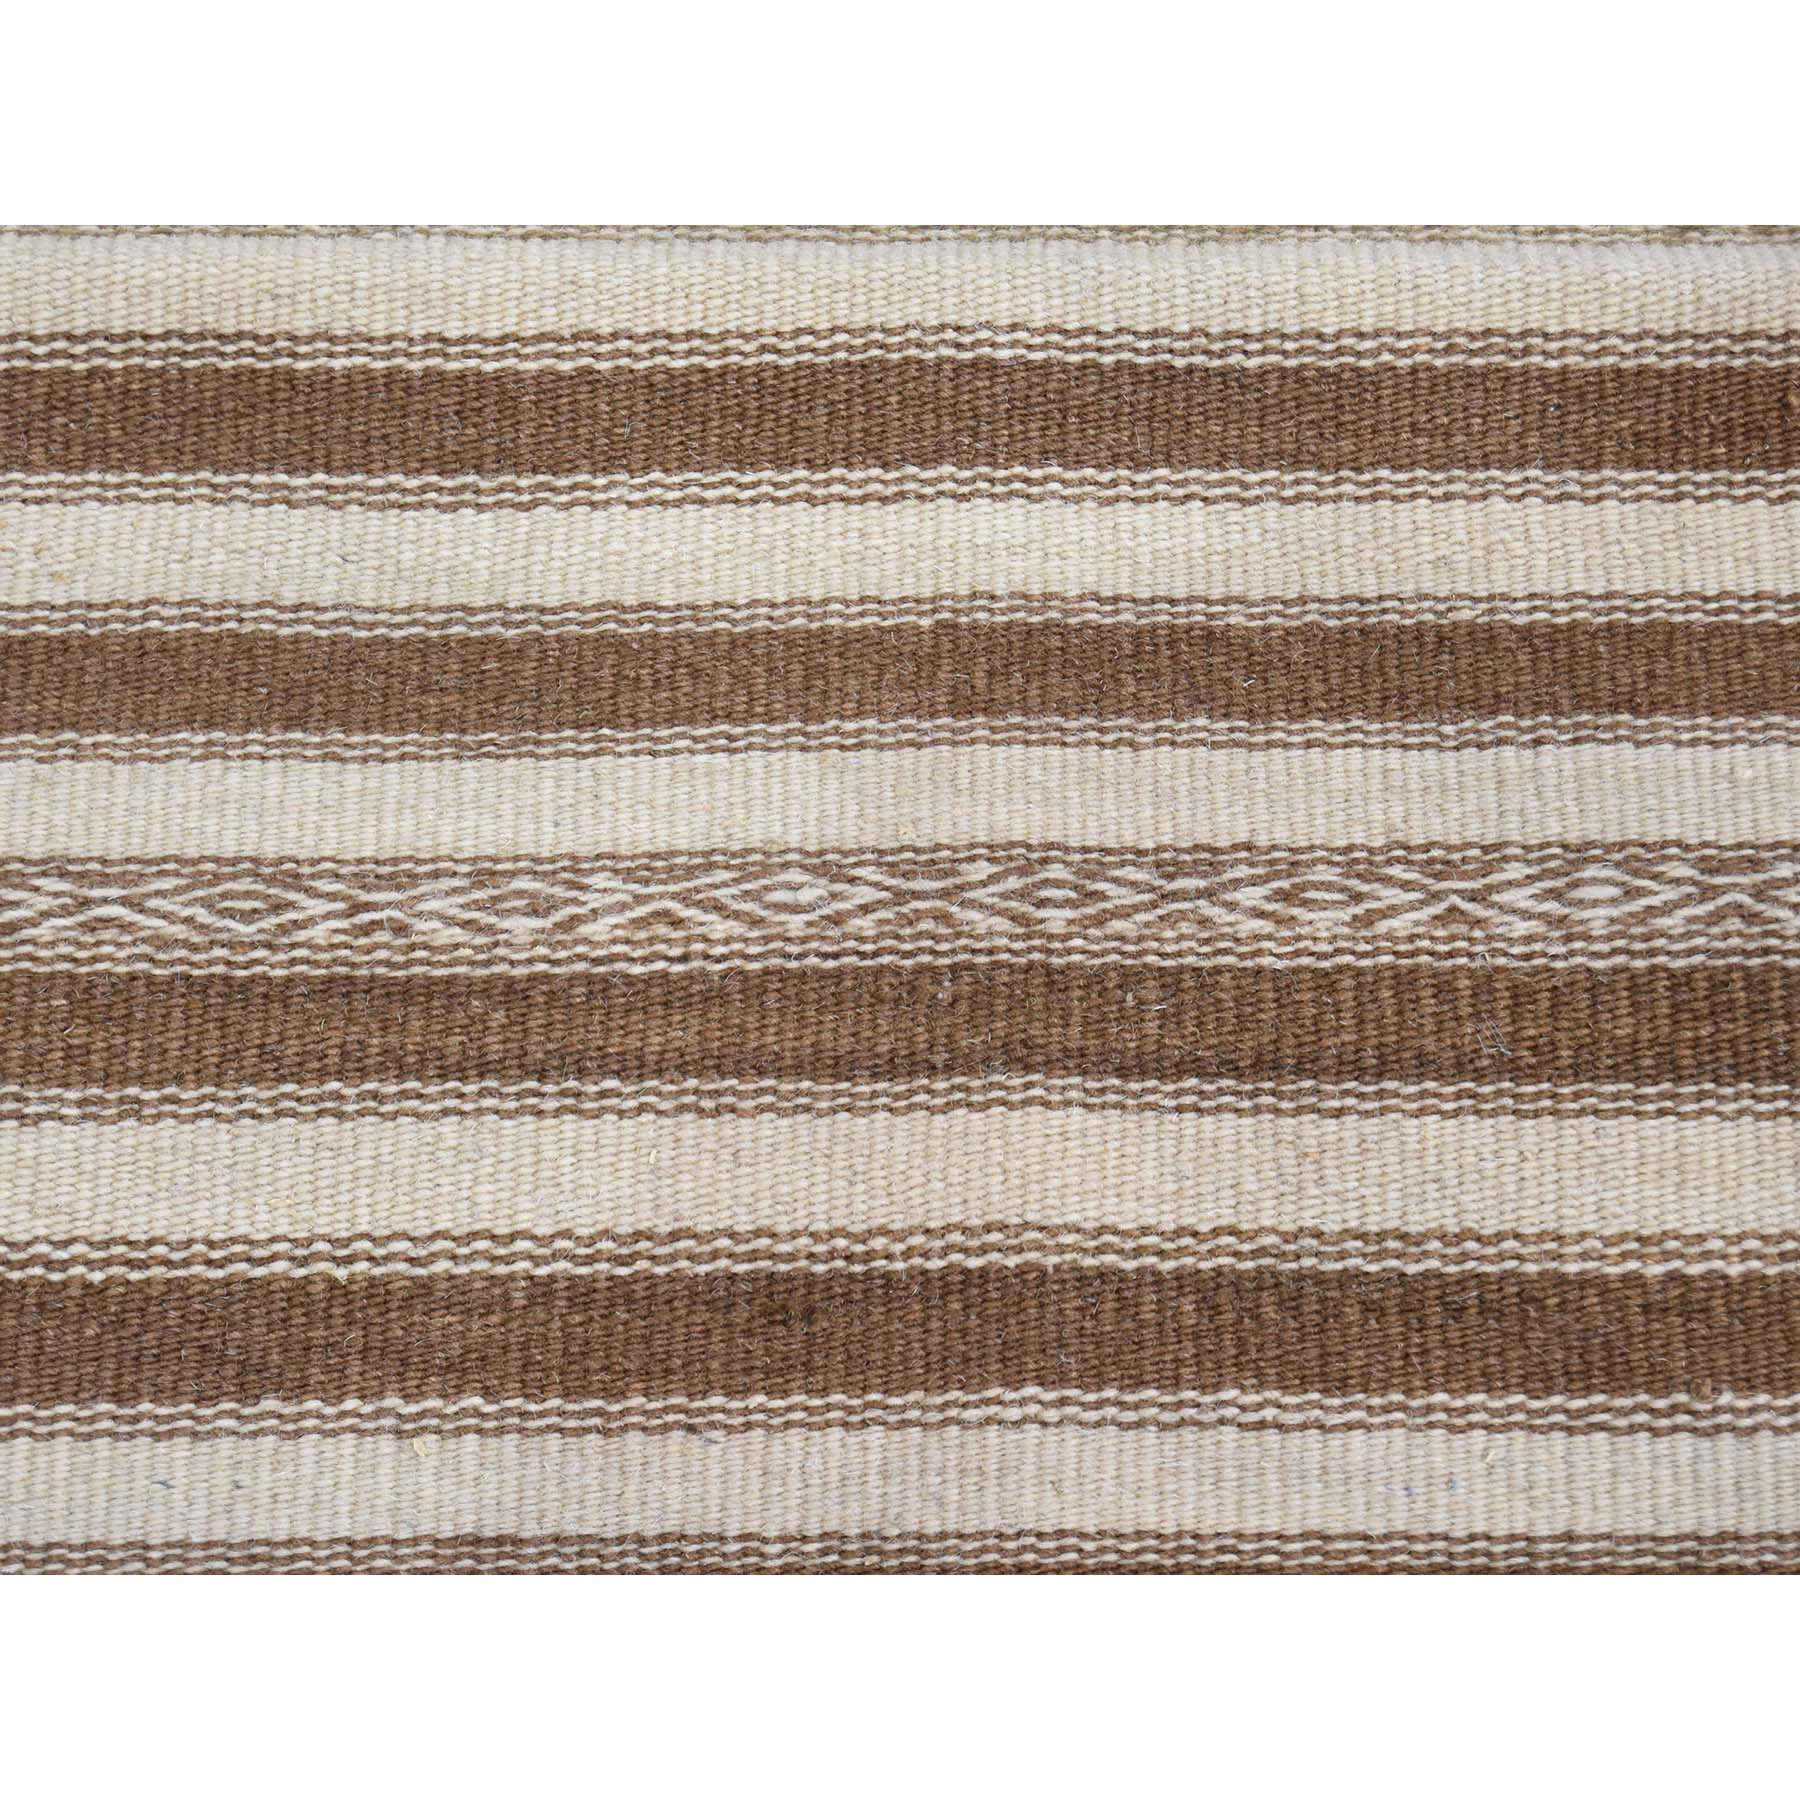 2-10--x5- Reversible Durie Kilim Pure Wool Hand Woven Oriental Rug